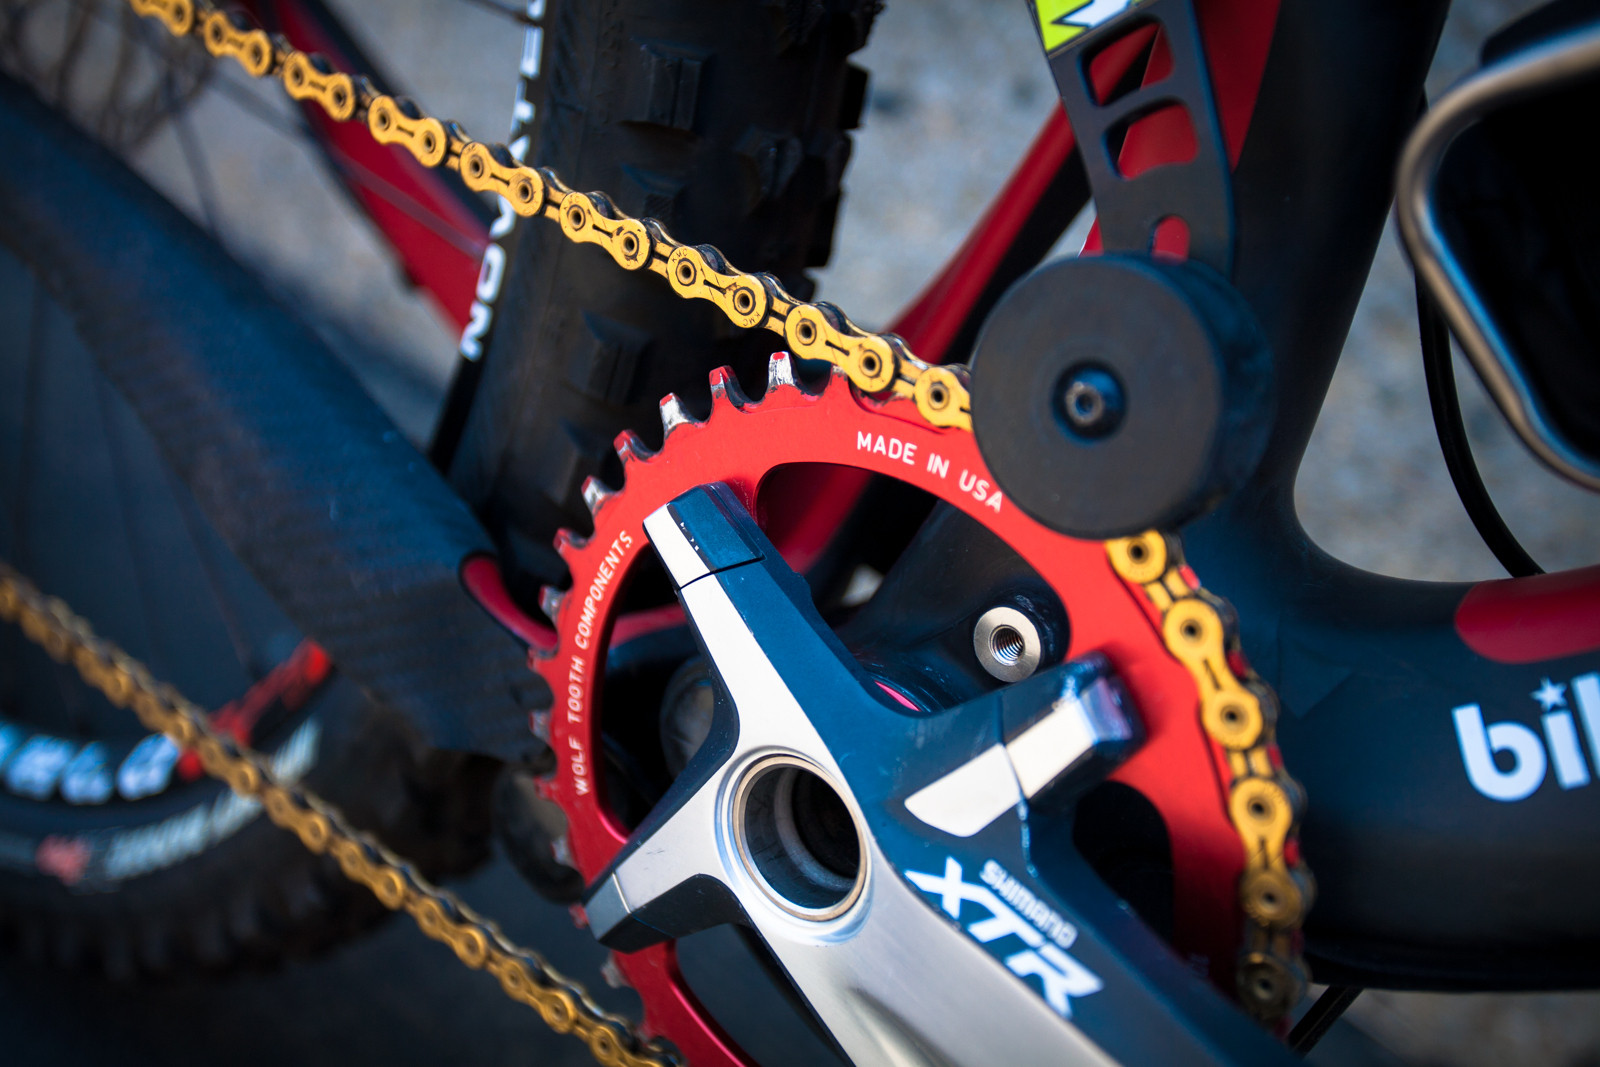 Wolf Tooth Components Chainring on Brian Lopes' Intense Tracer T275 - Pro Bike Check: Brian Lopes' Intense Tracer T275 - Mountain Biking Pictures - Vital MTB